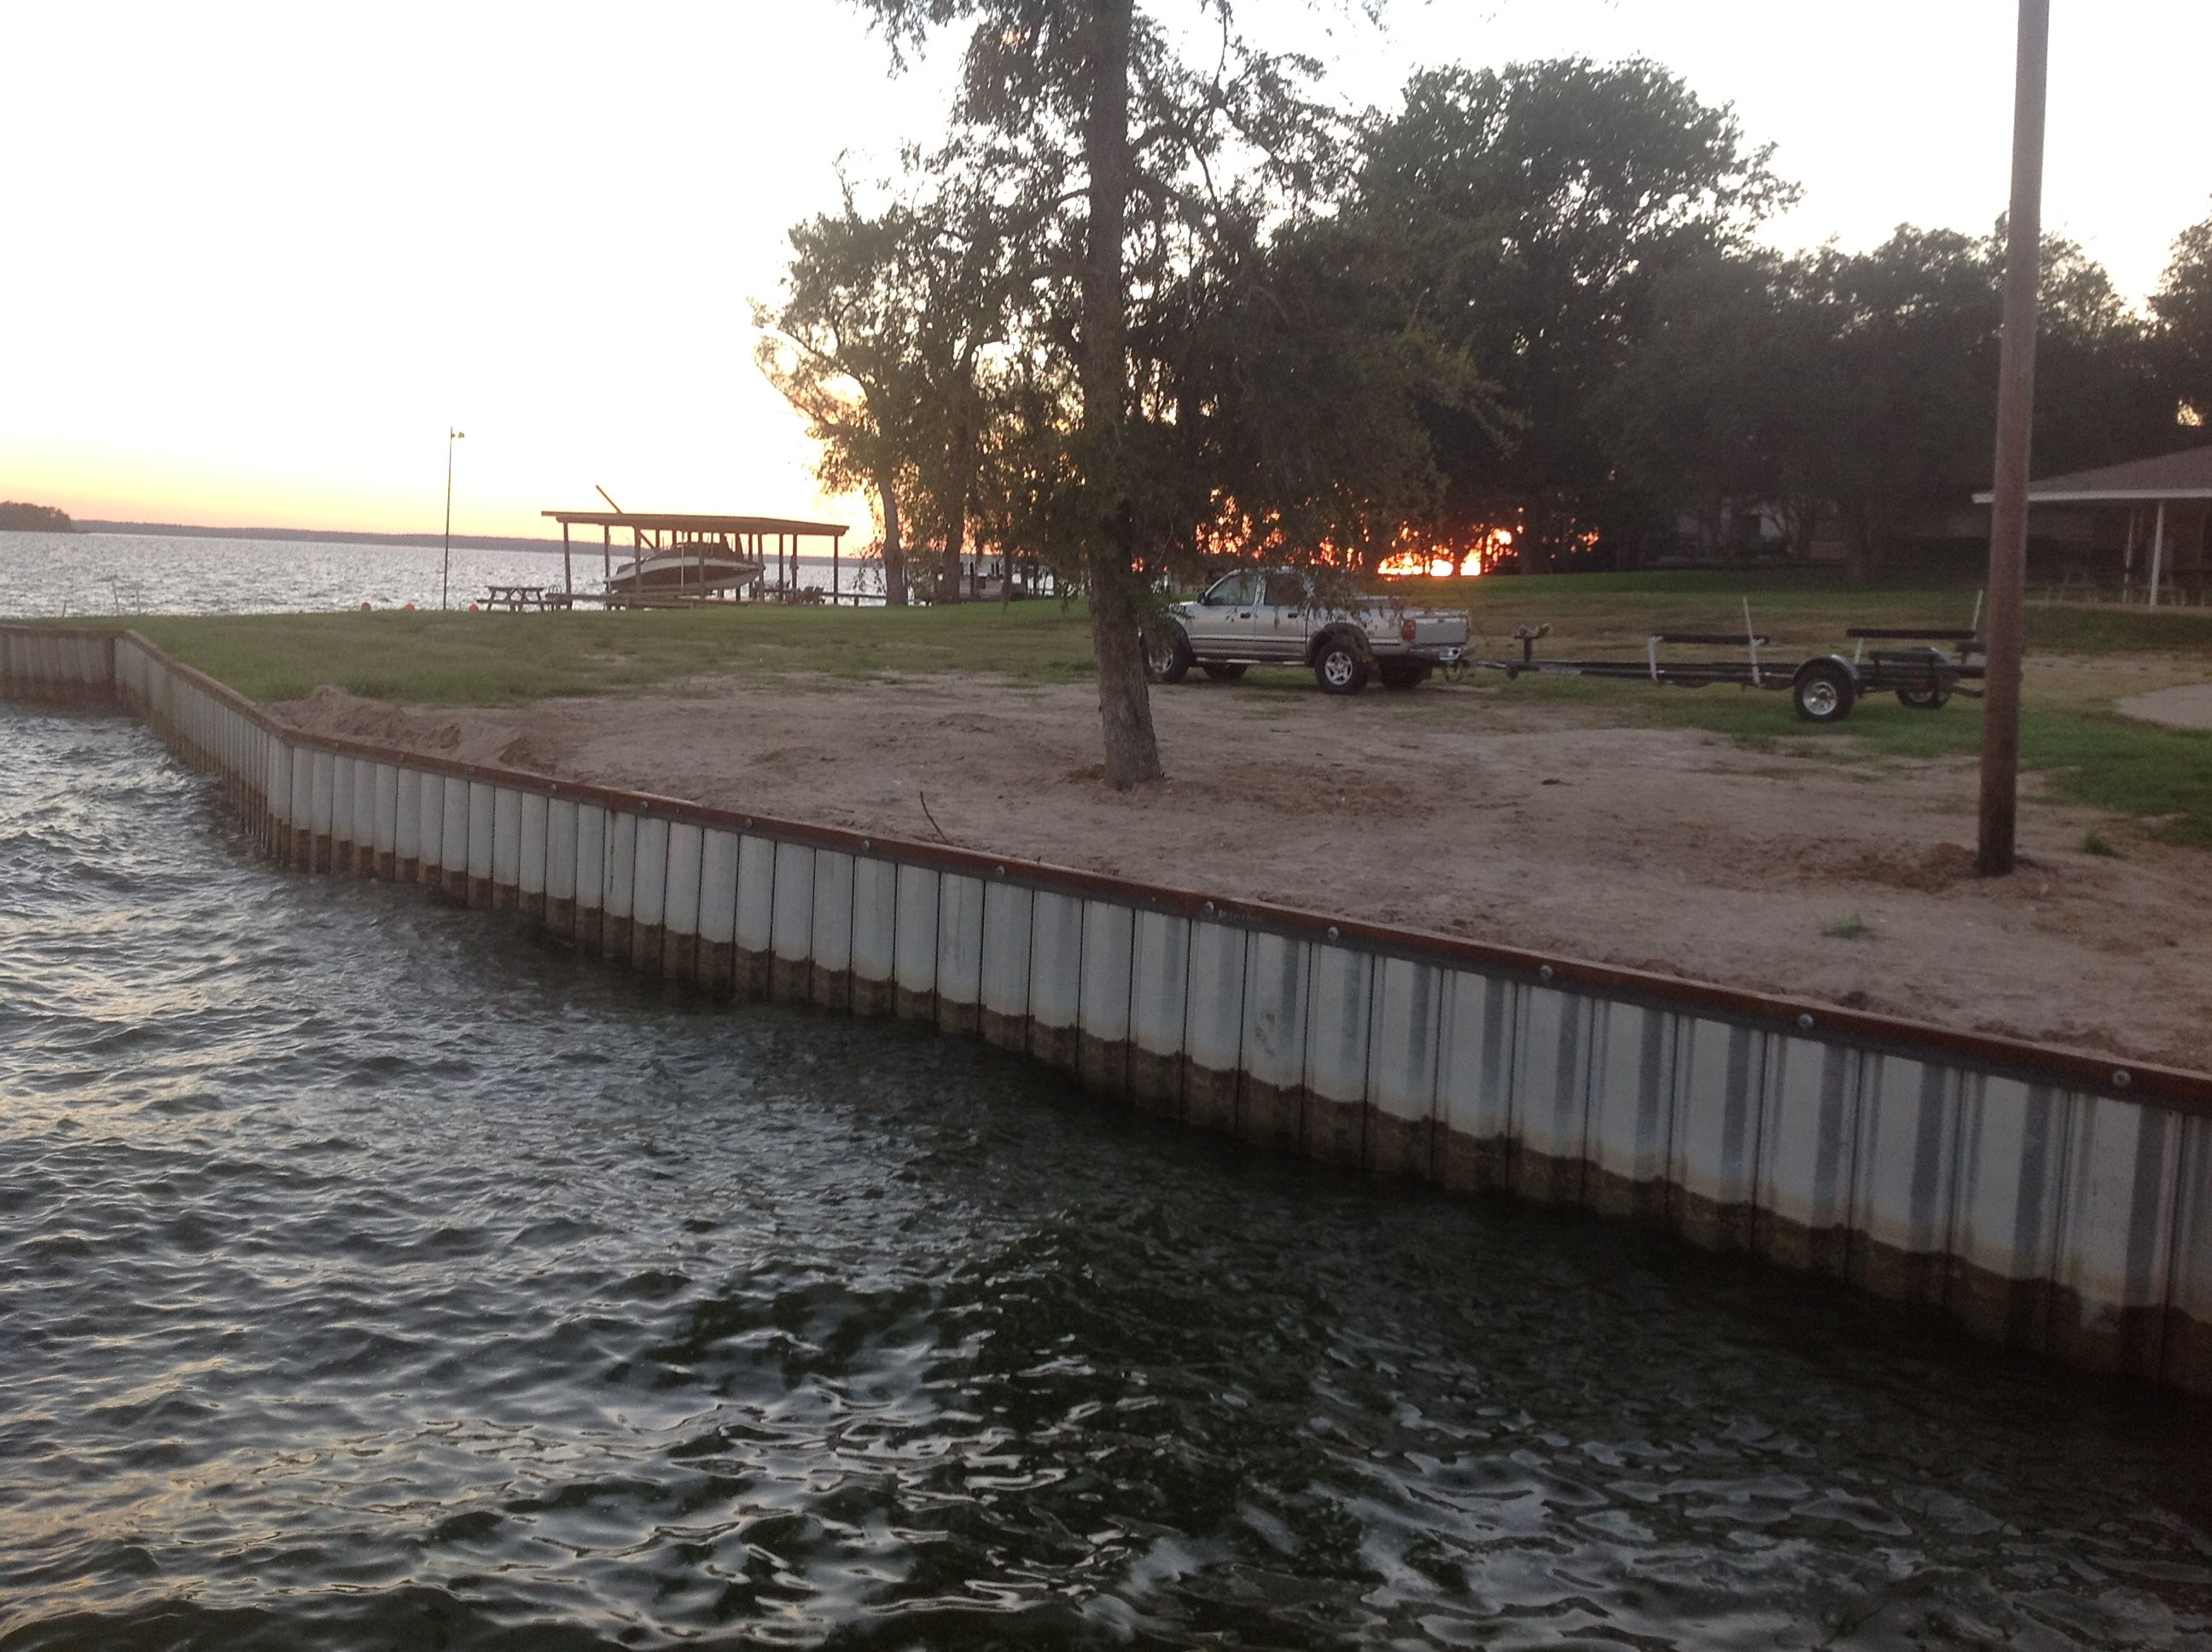 Lake Livingston Bulkheads And Boathouses Lake Livingston Contractors Web Links Boat Houses Docks Piers Dr House Boat Lakefront Living Construction Contract